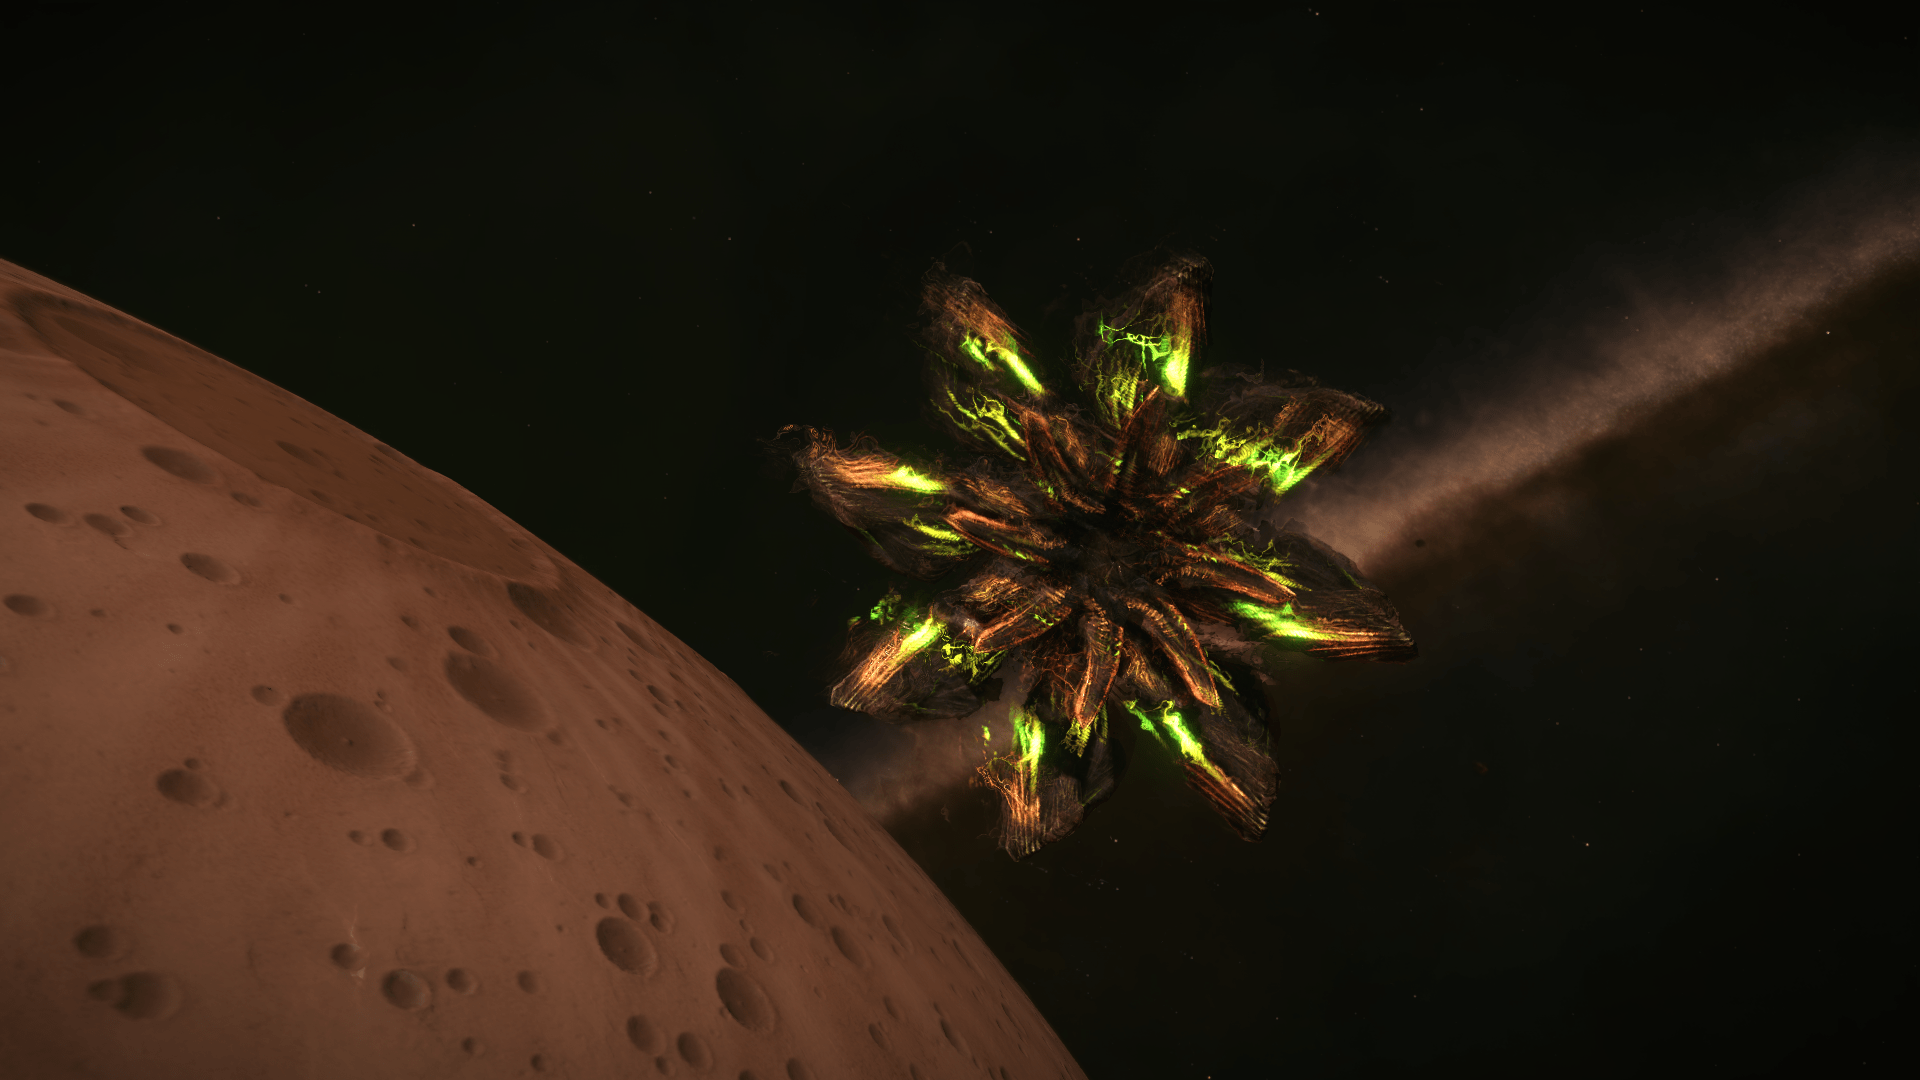 Thargoid Data: We need your help